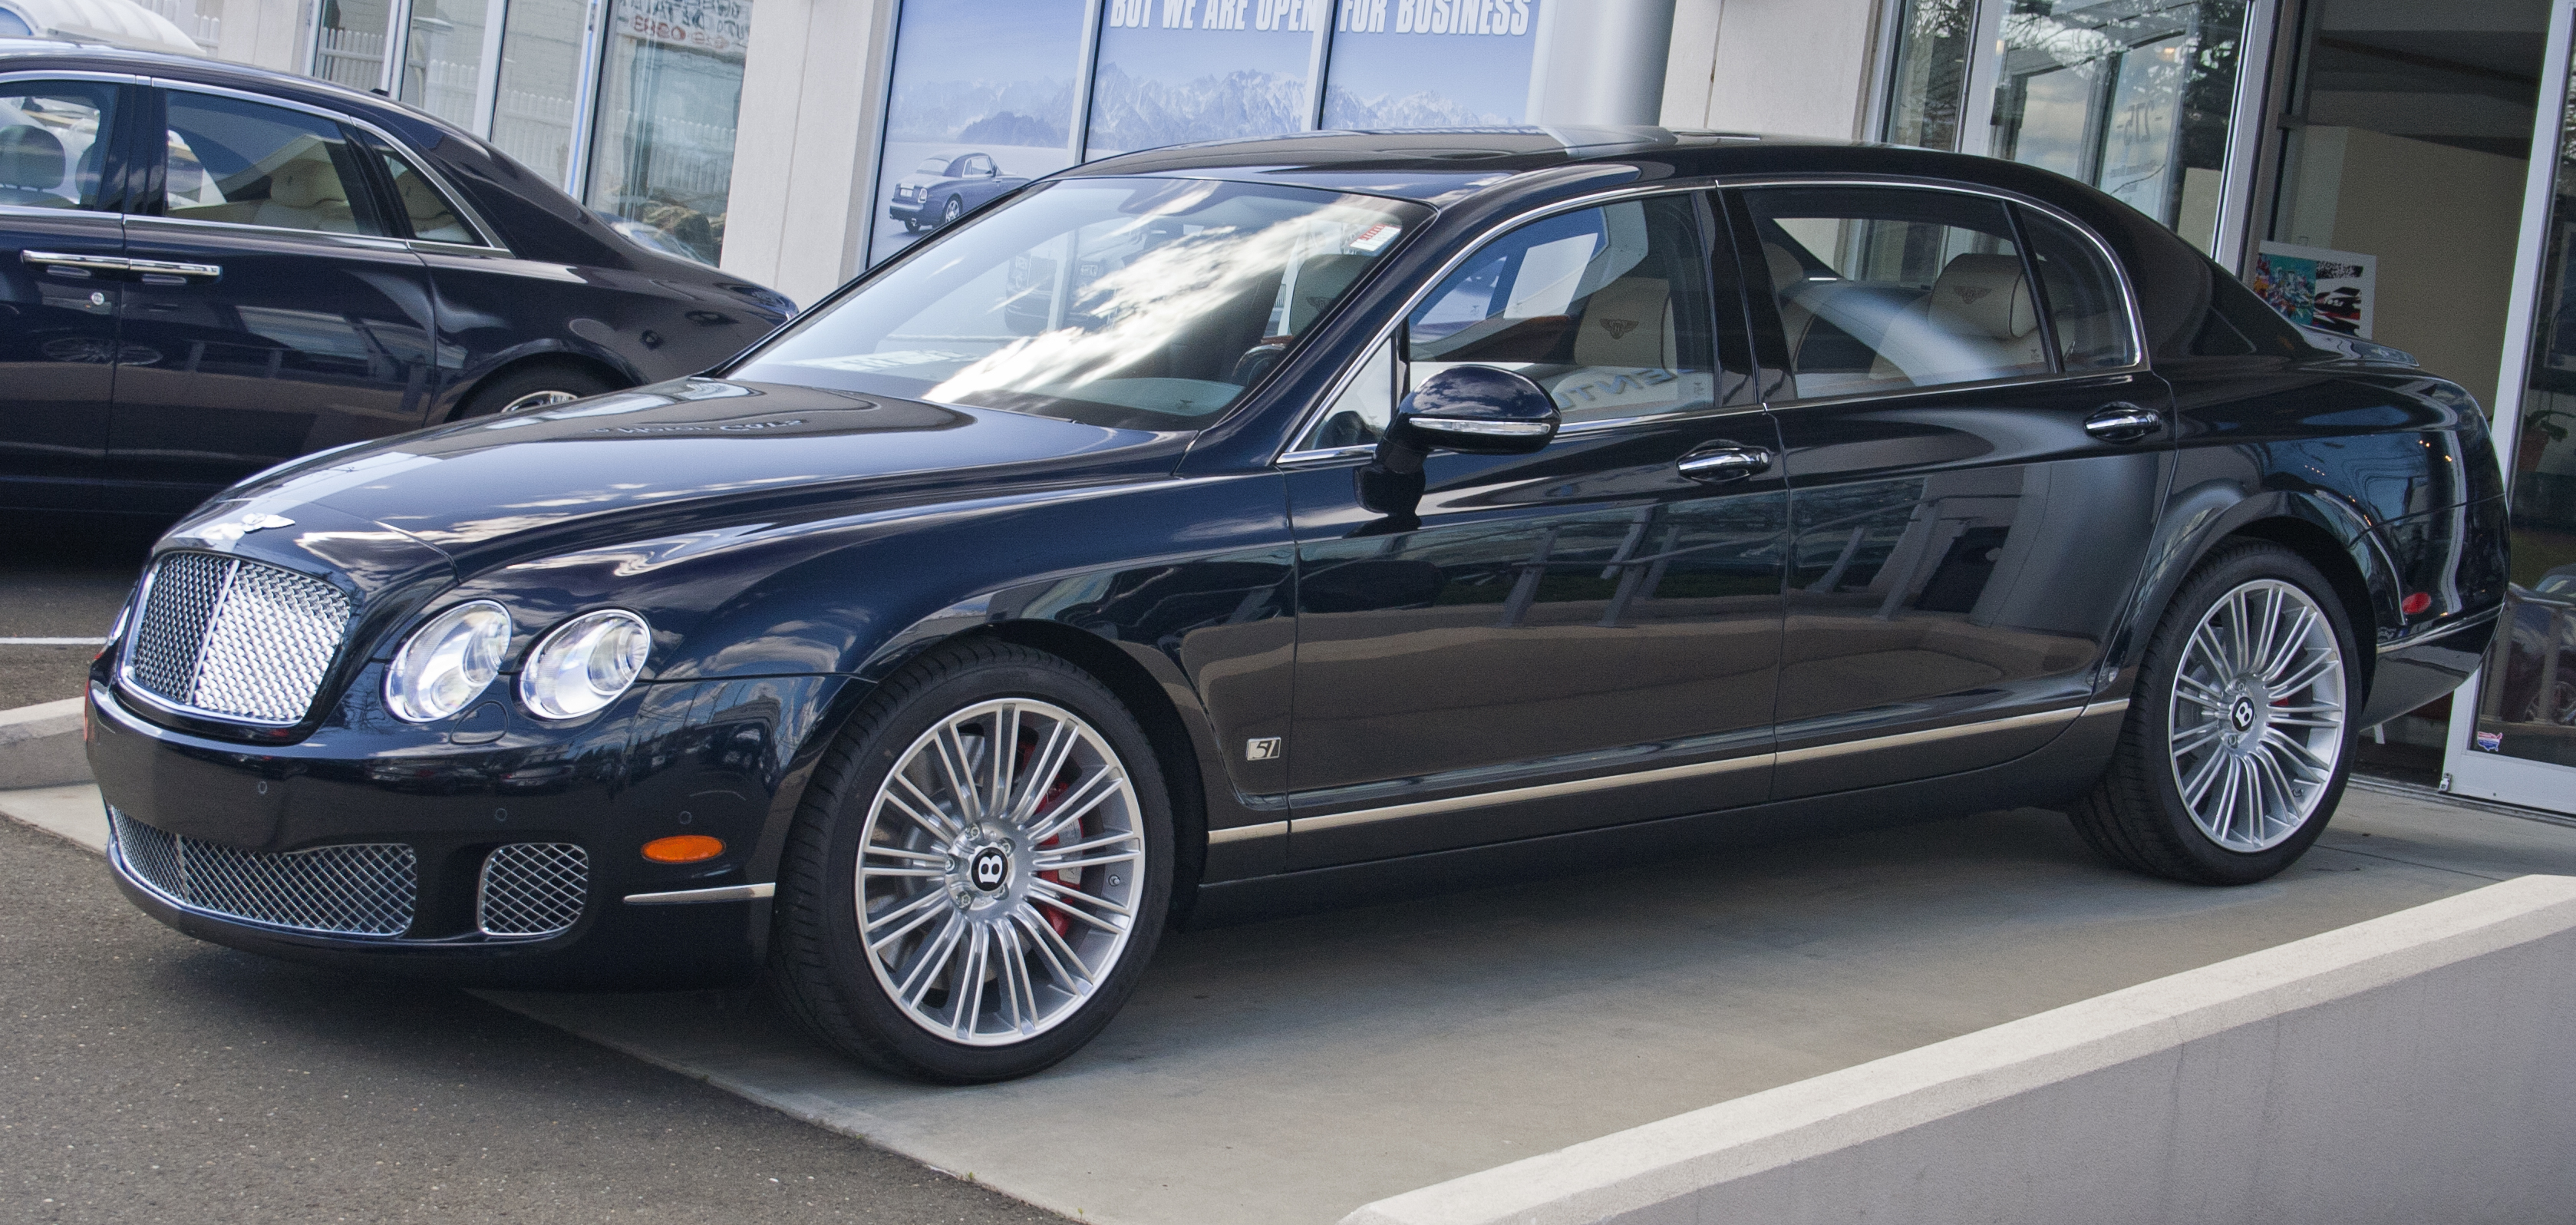 2012 Bentley Continental Flying Spur #1